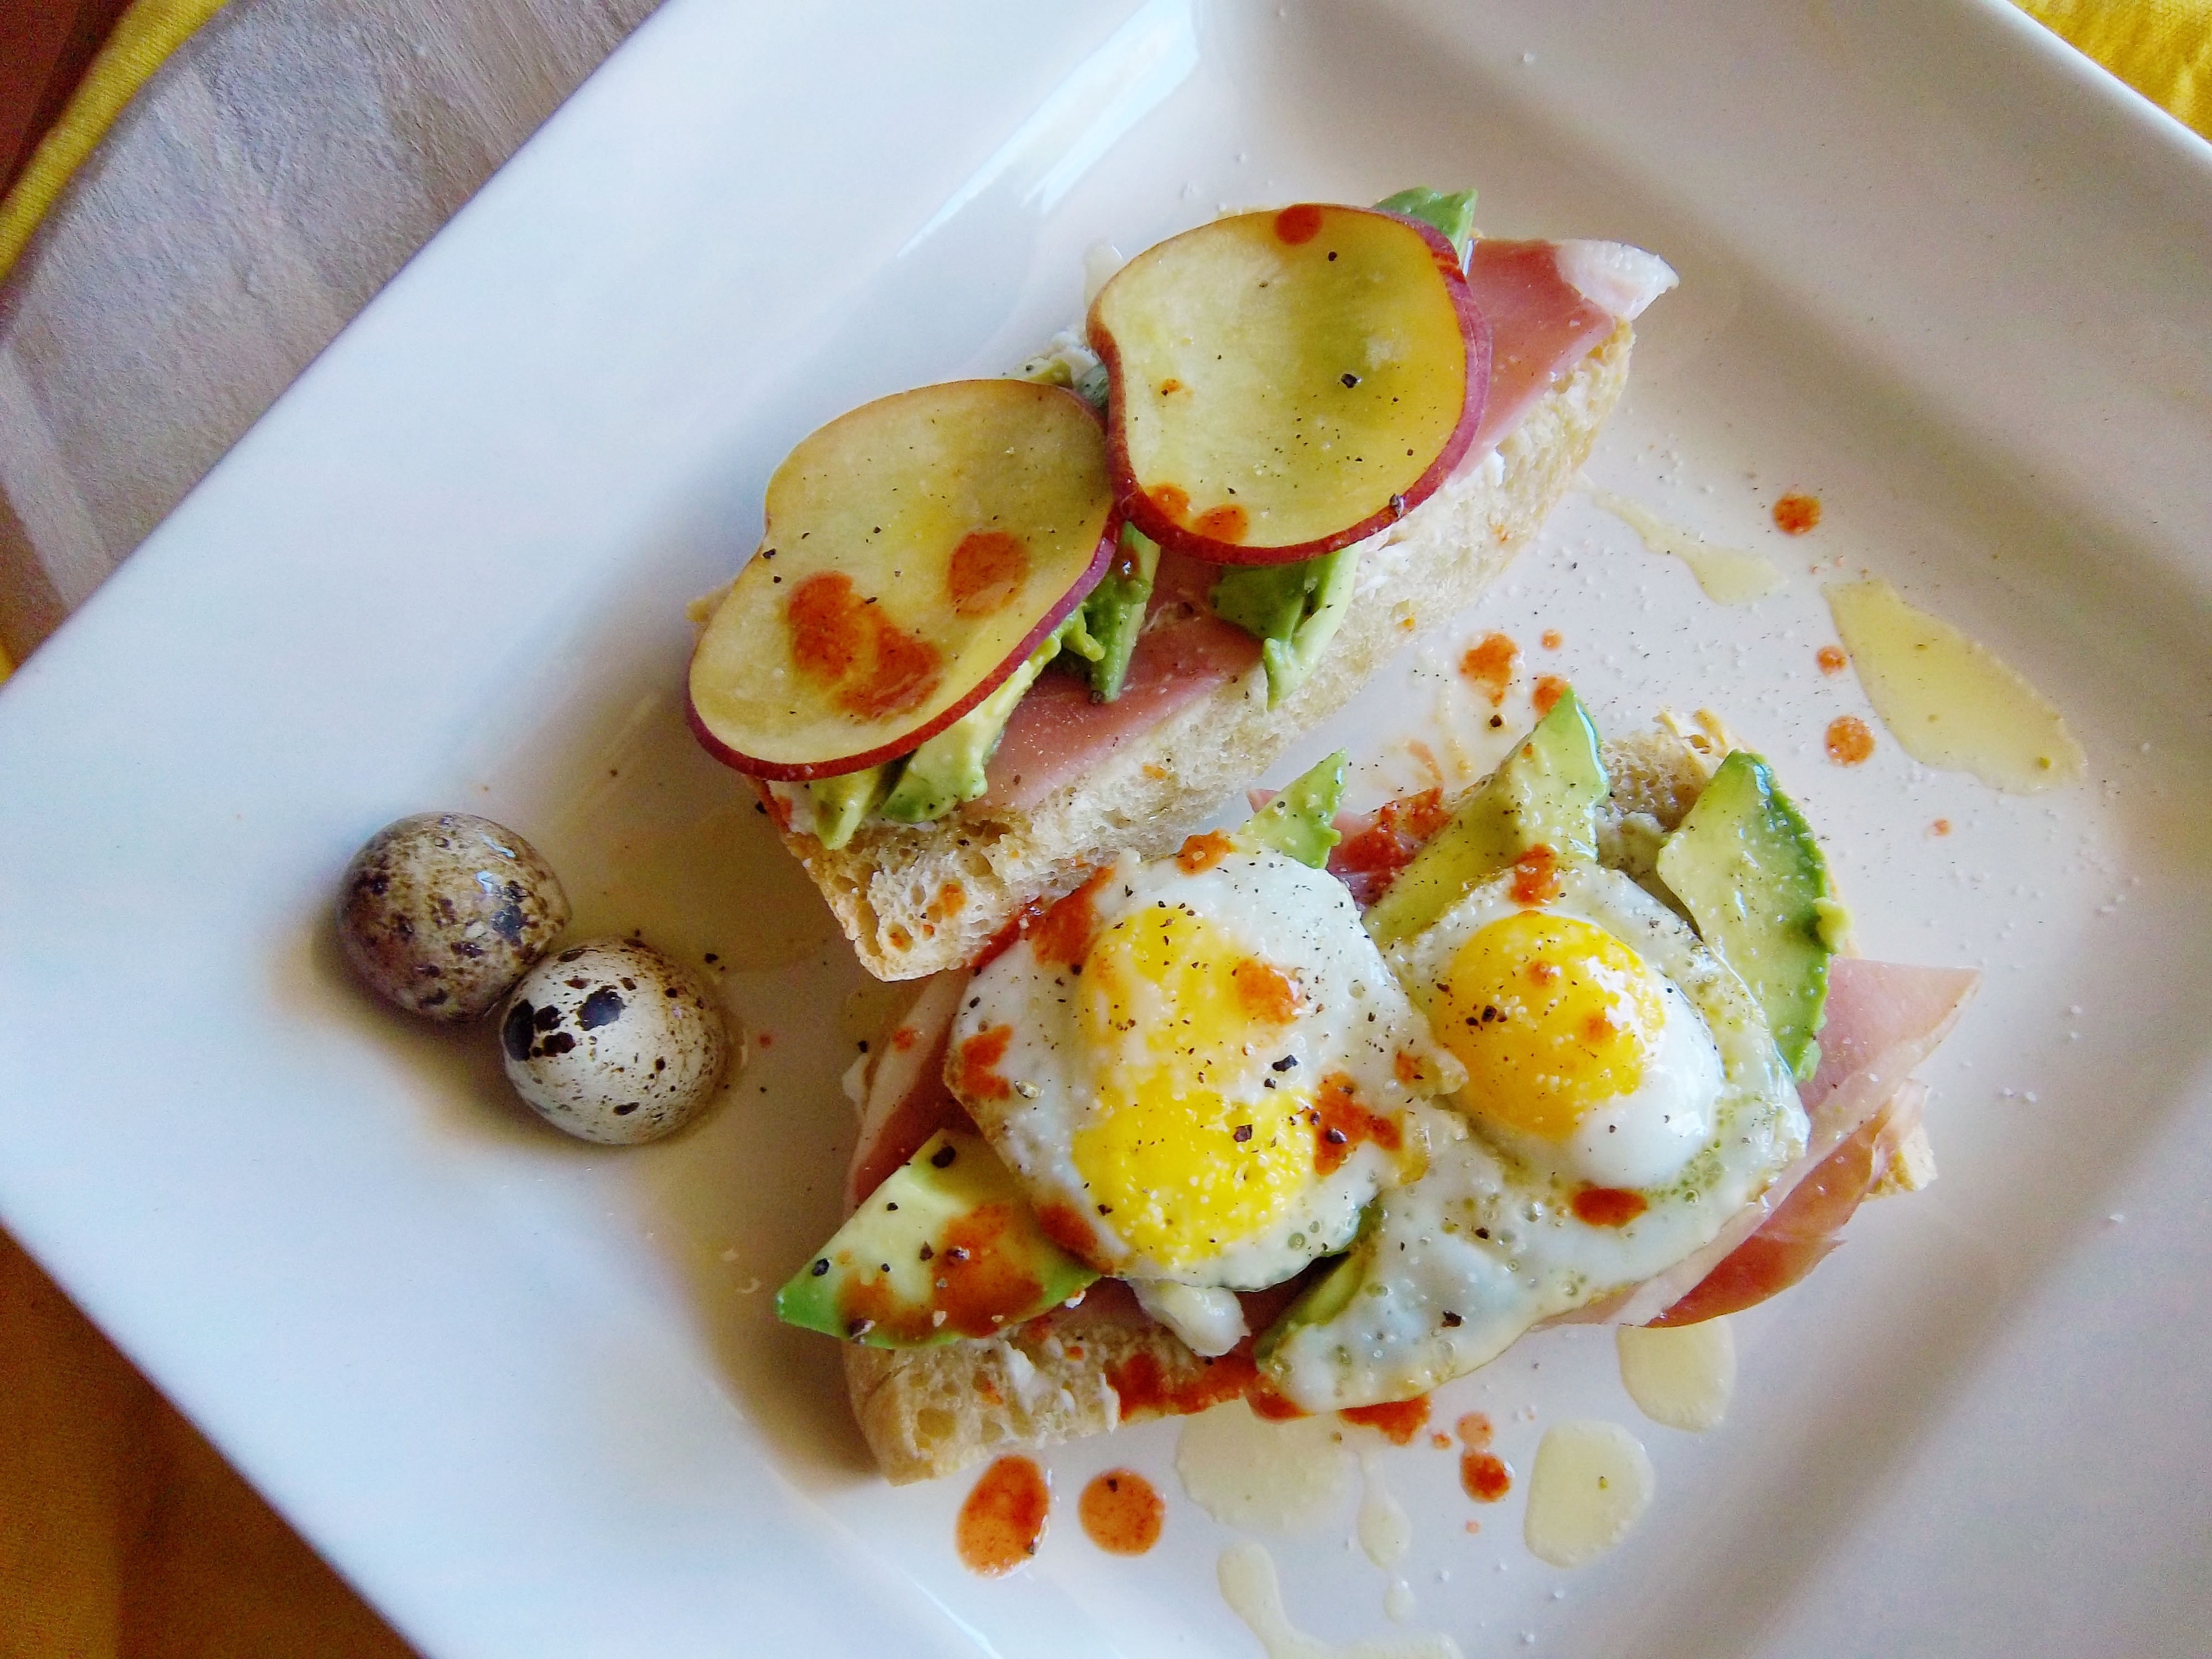 Avocado Tartine with Quail Eggs, Prosciutto &amp; Goat Cheese